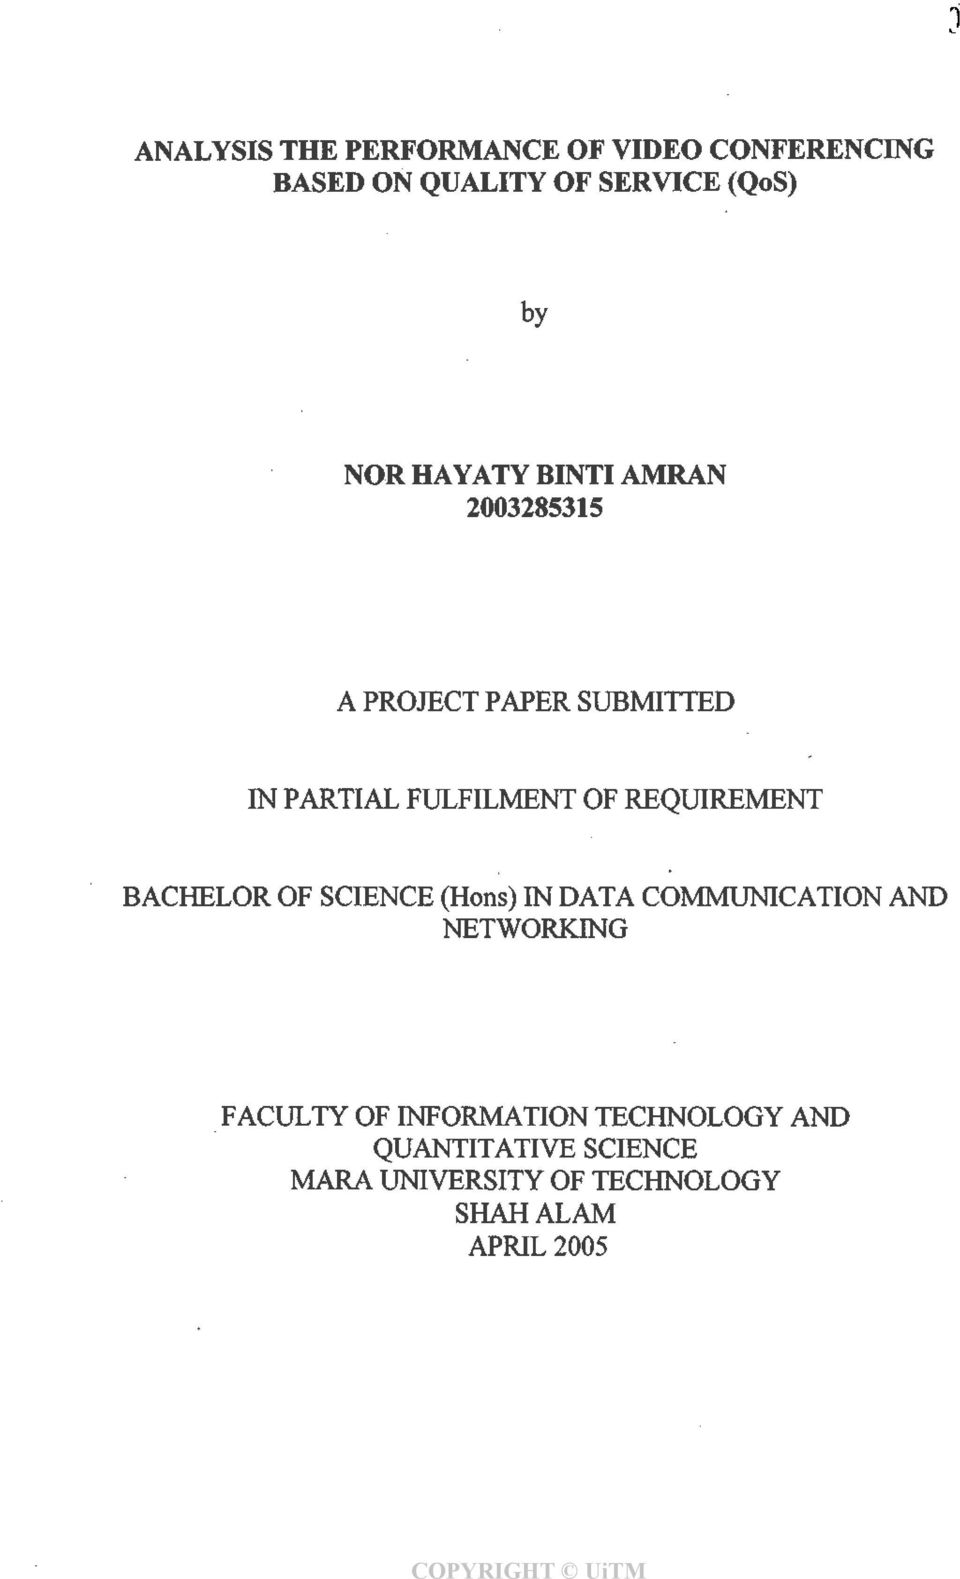 REQUIREMENT BACHELOR OF SCIENCE (Hons) IN DATA COMMUNICATION AND NETWORKING FACULTY OF